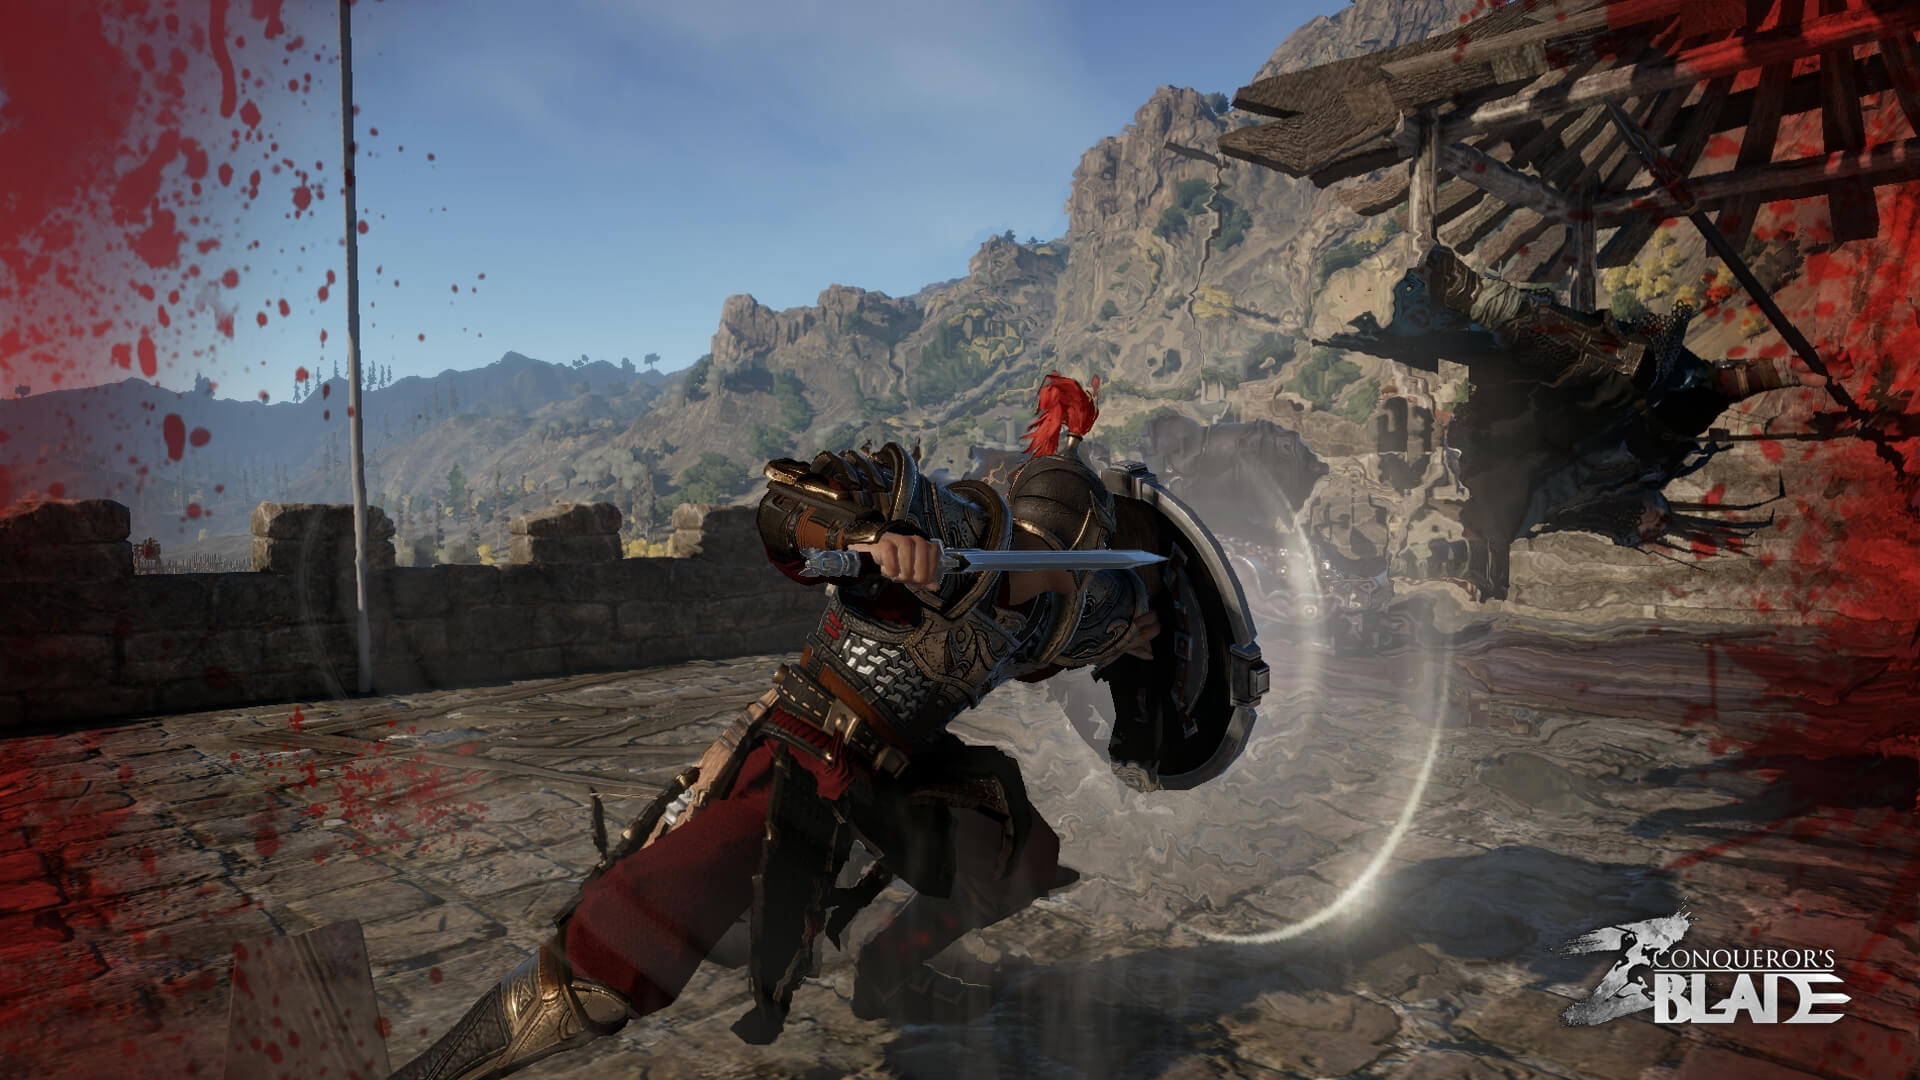 Conqueror's Blade Screenshot 5